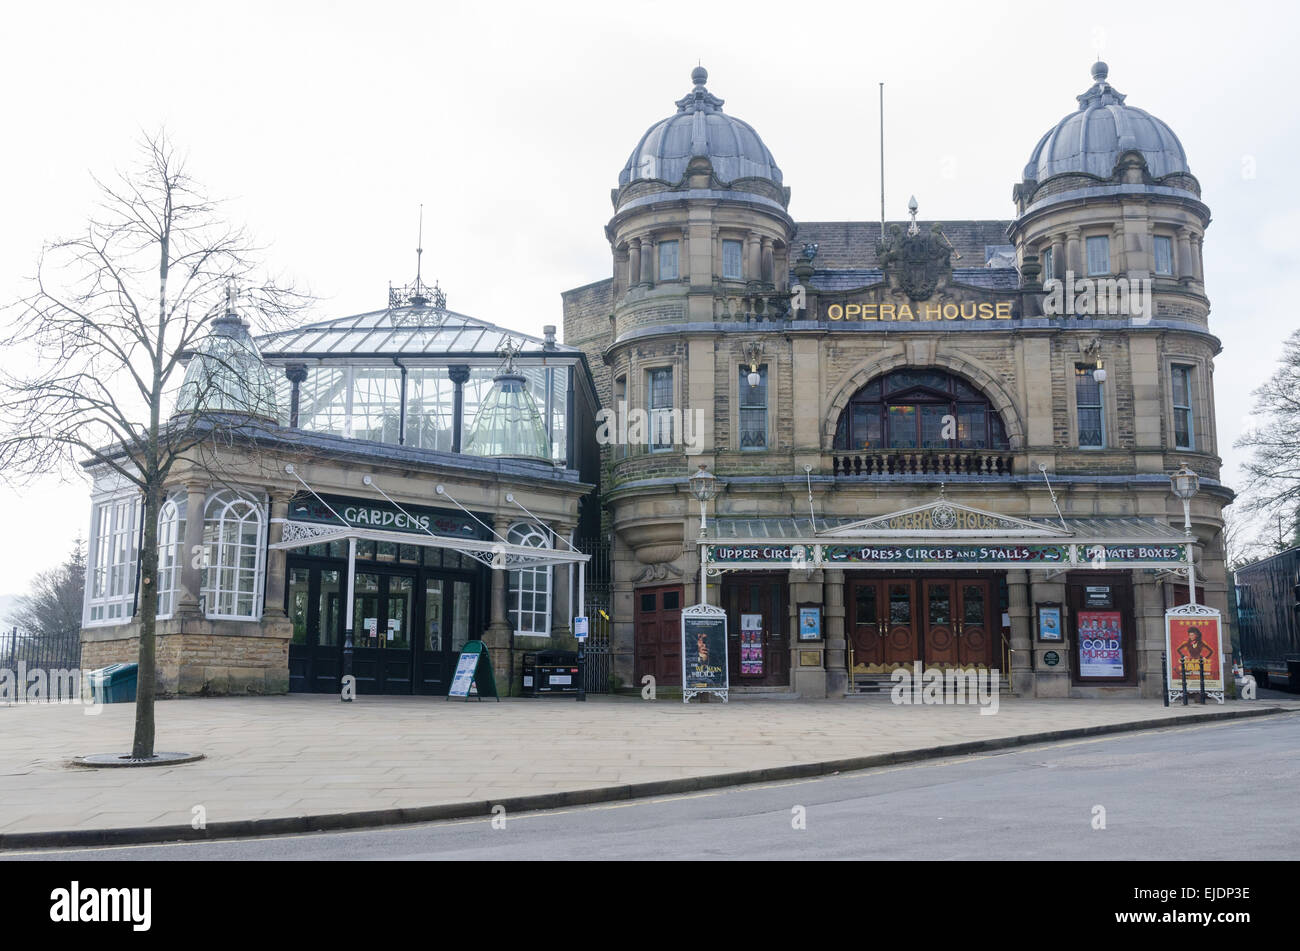 Frank Matcham's Opera House in the Derbyshire spa town of Buxton - Stock Image